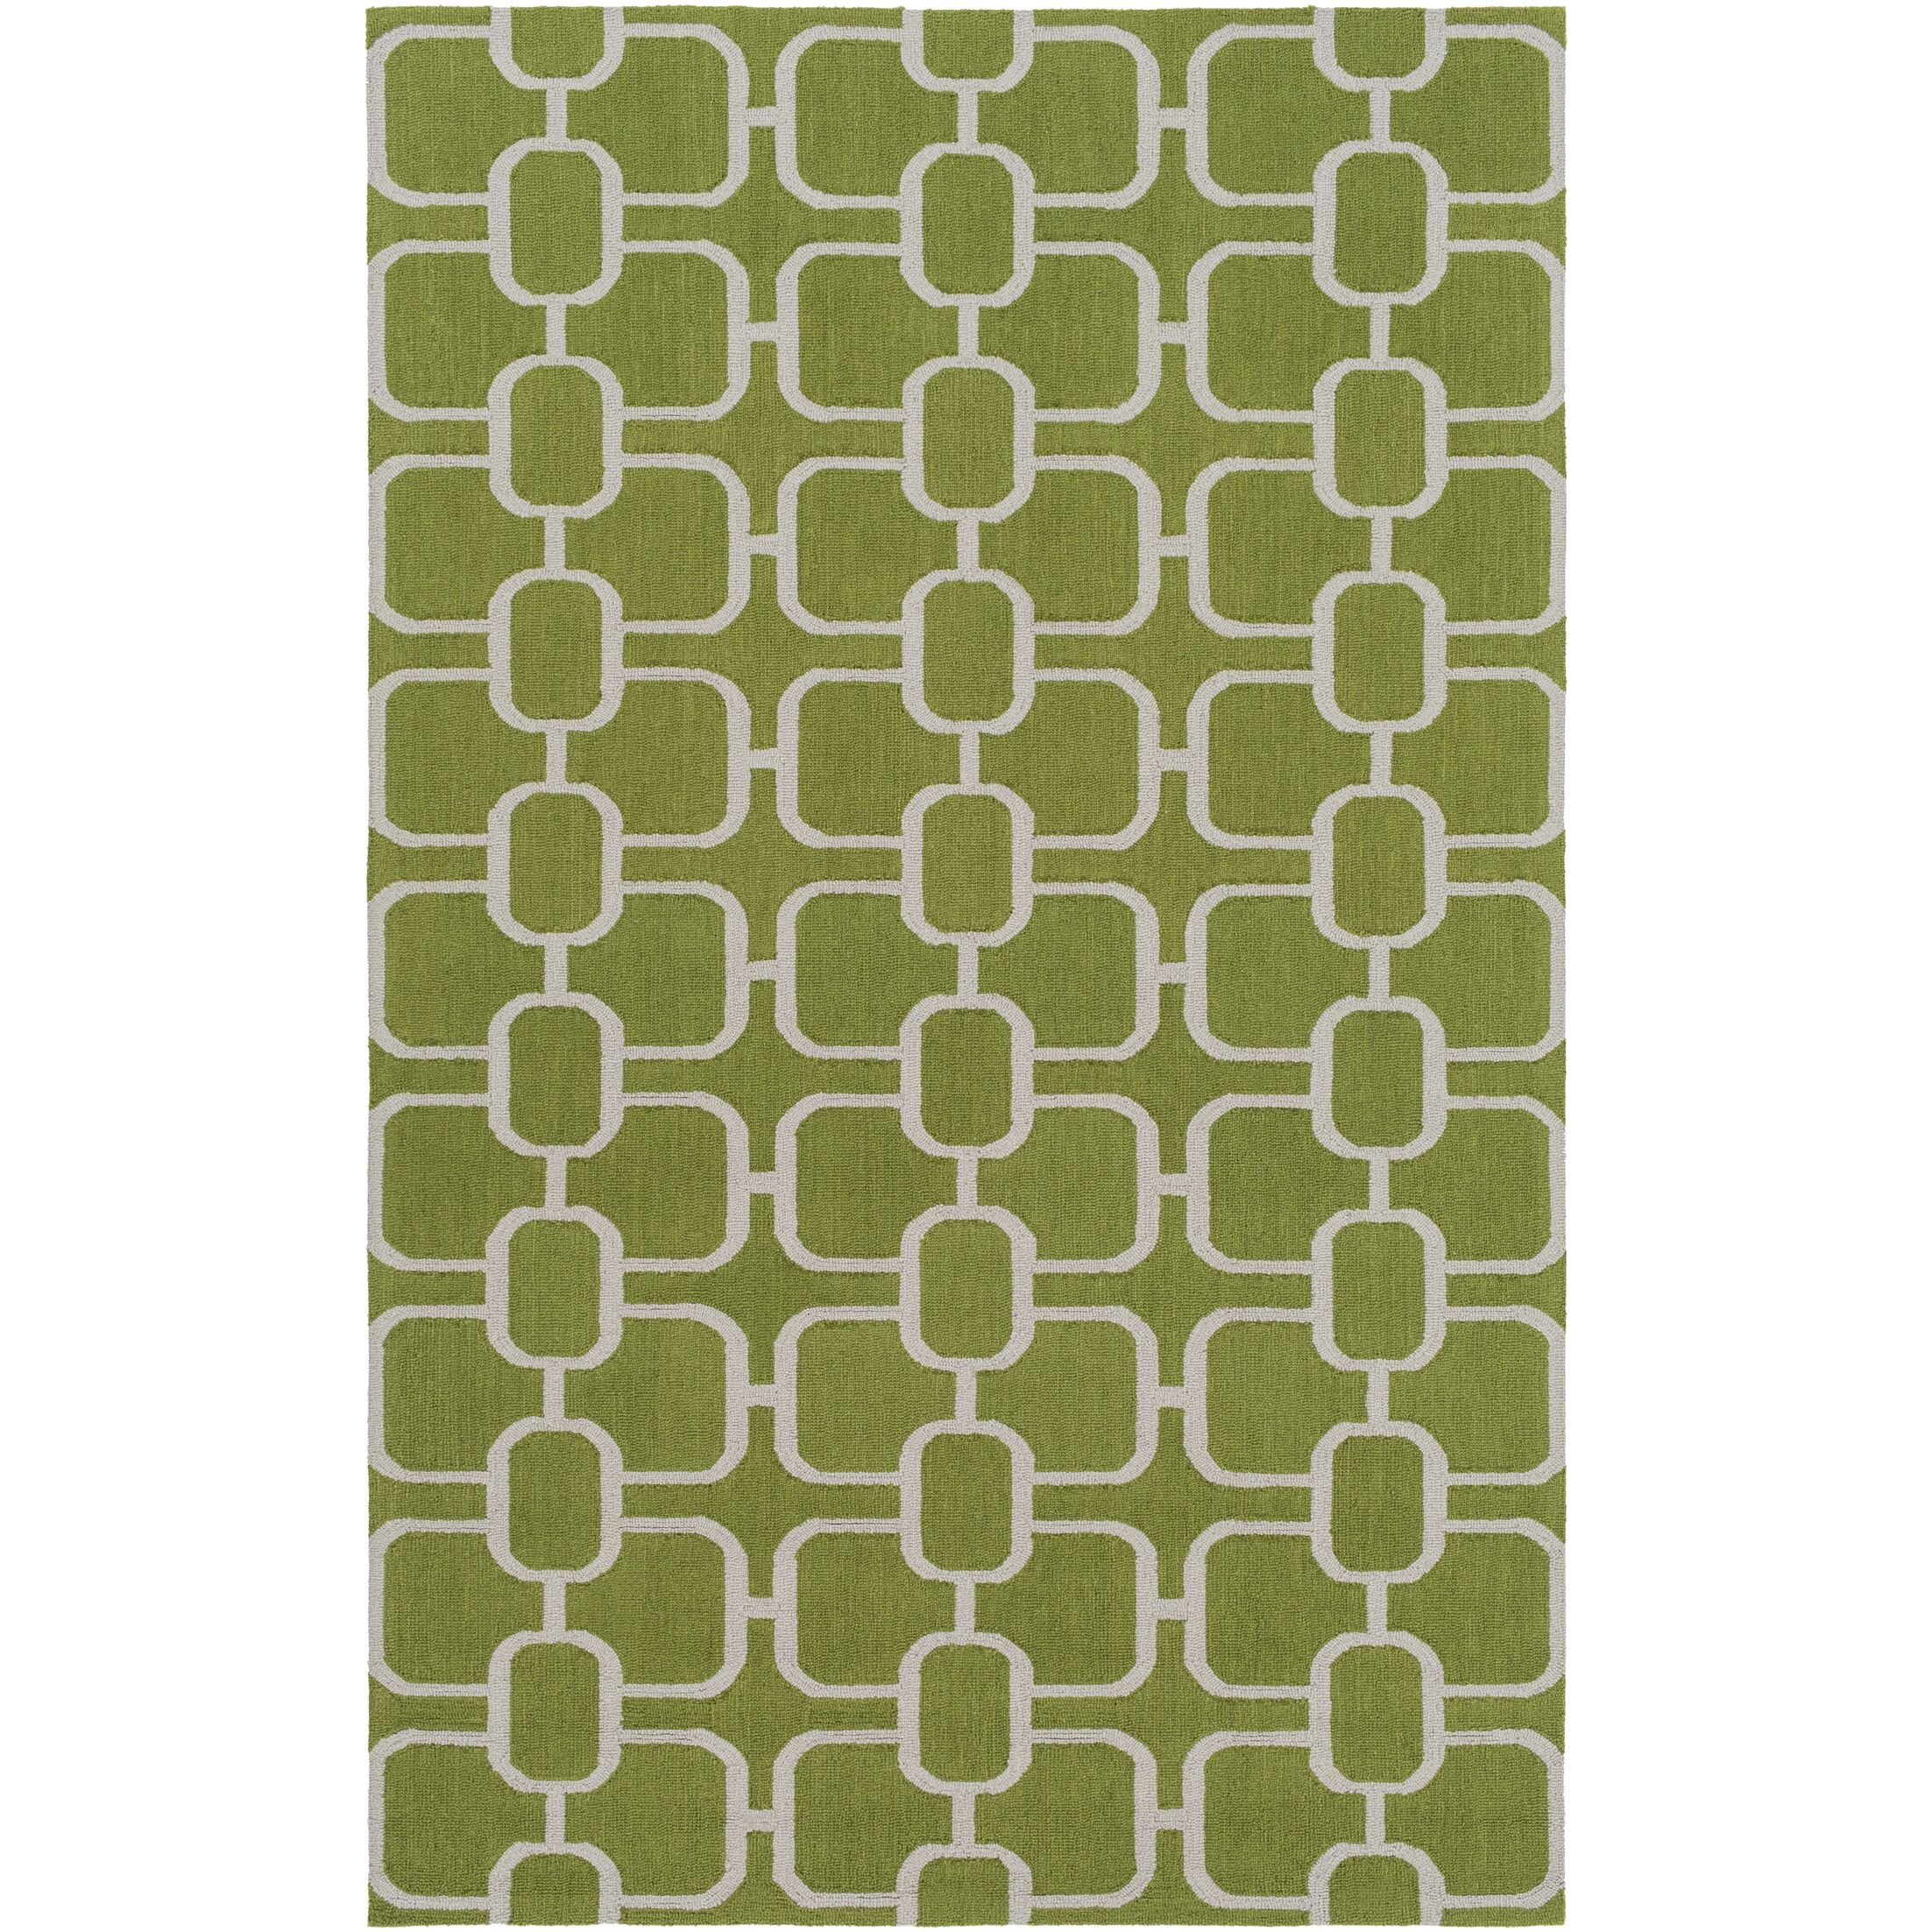 Herring Hand-Hooked Grass Green/Light Gray Area Rug Rug Size: Rectangle 8' x 10'